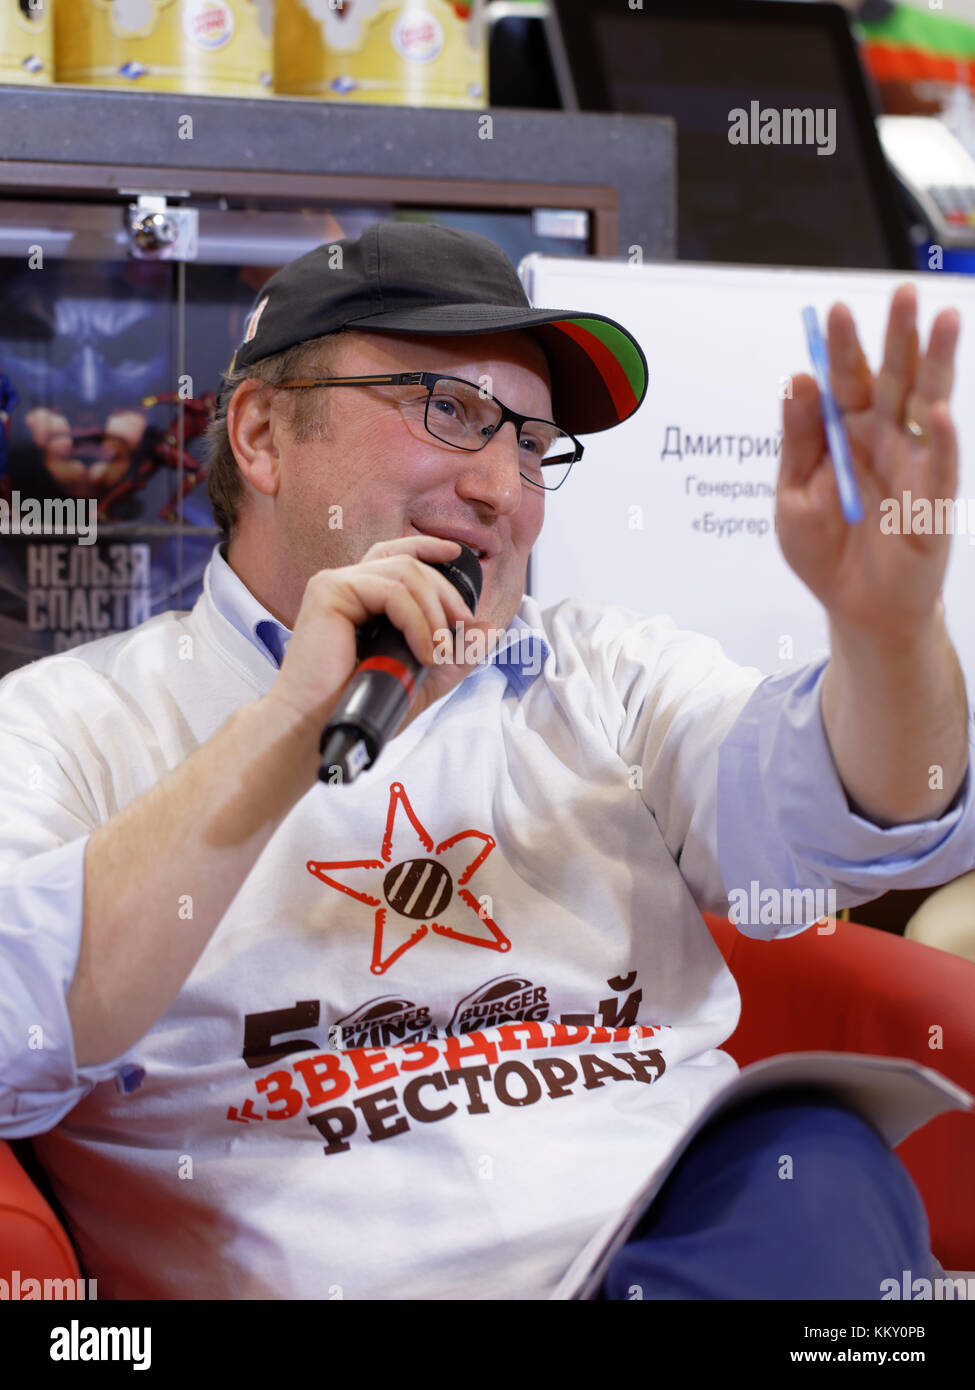 Dmitry Medovy, general director of Burger King Russia, talks with press in 500th Burger King restaurant in the day - Stock Image